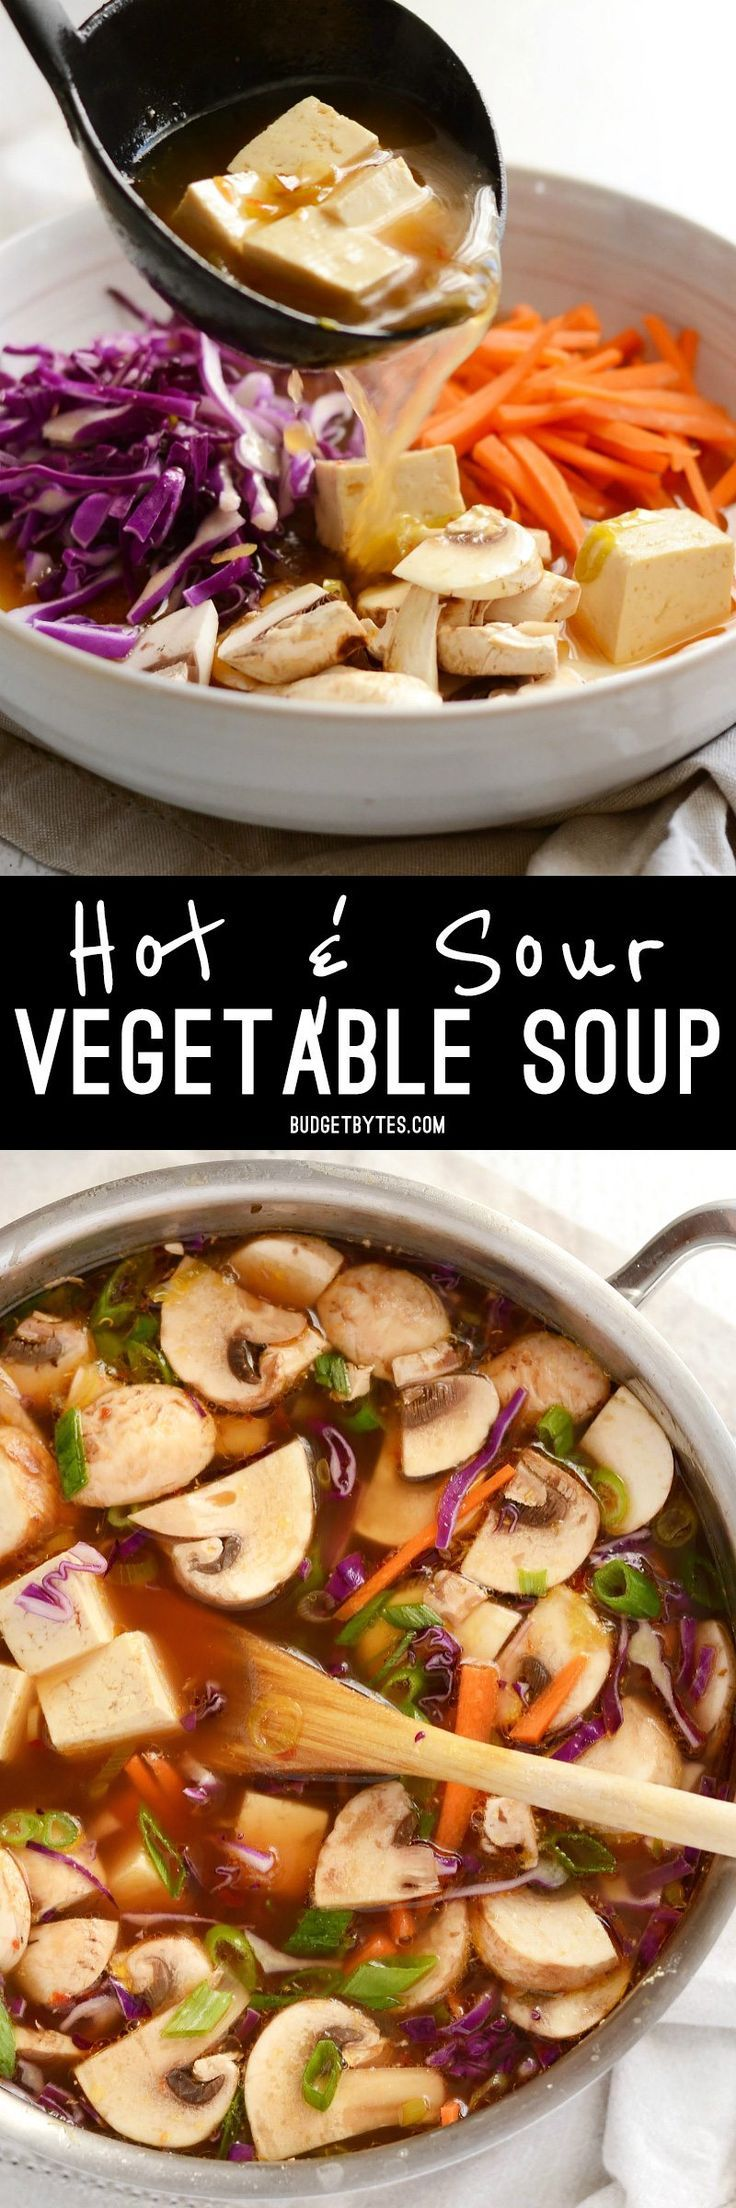 This hot & sour vegetable soup is light on the stomach, but not light on flavor! The spicy and tangy broth infuses the tofu and vegetables for maximum impact.